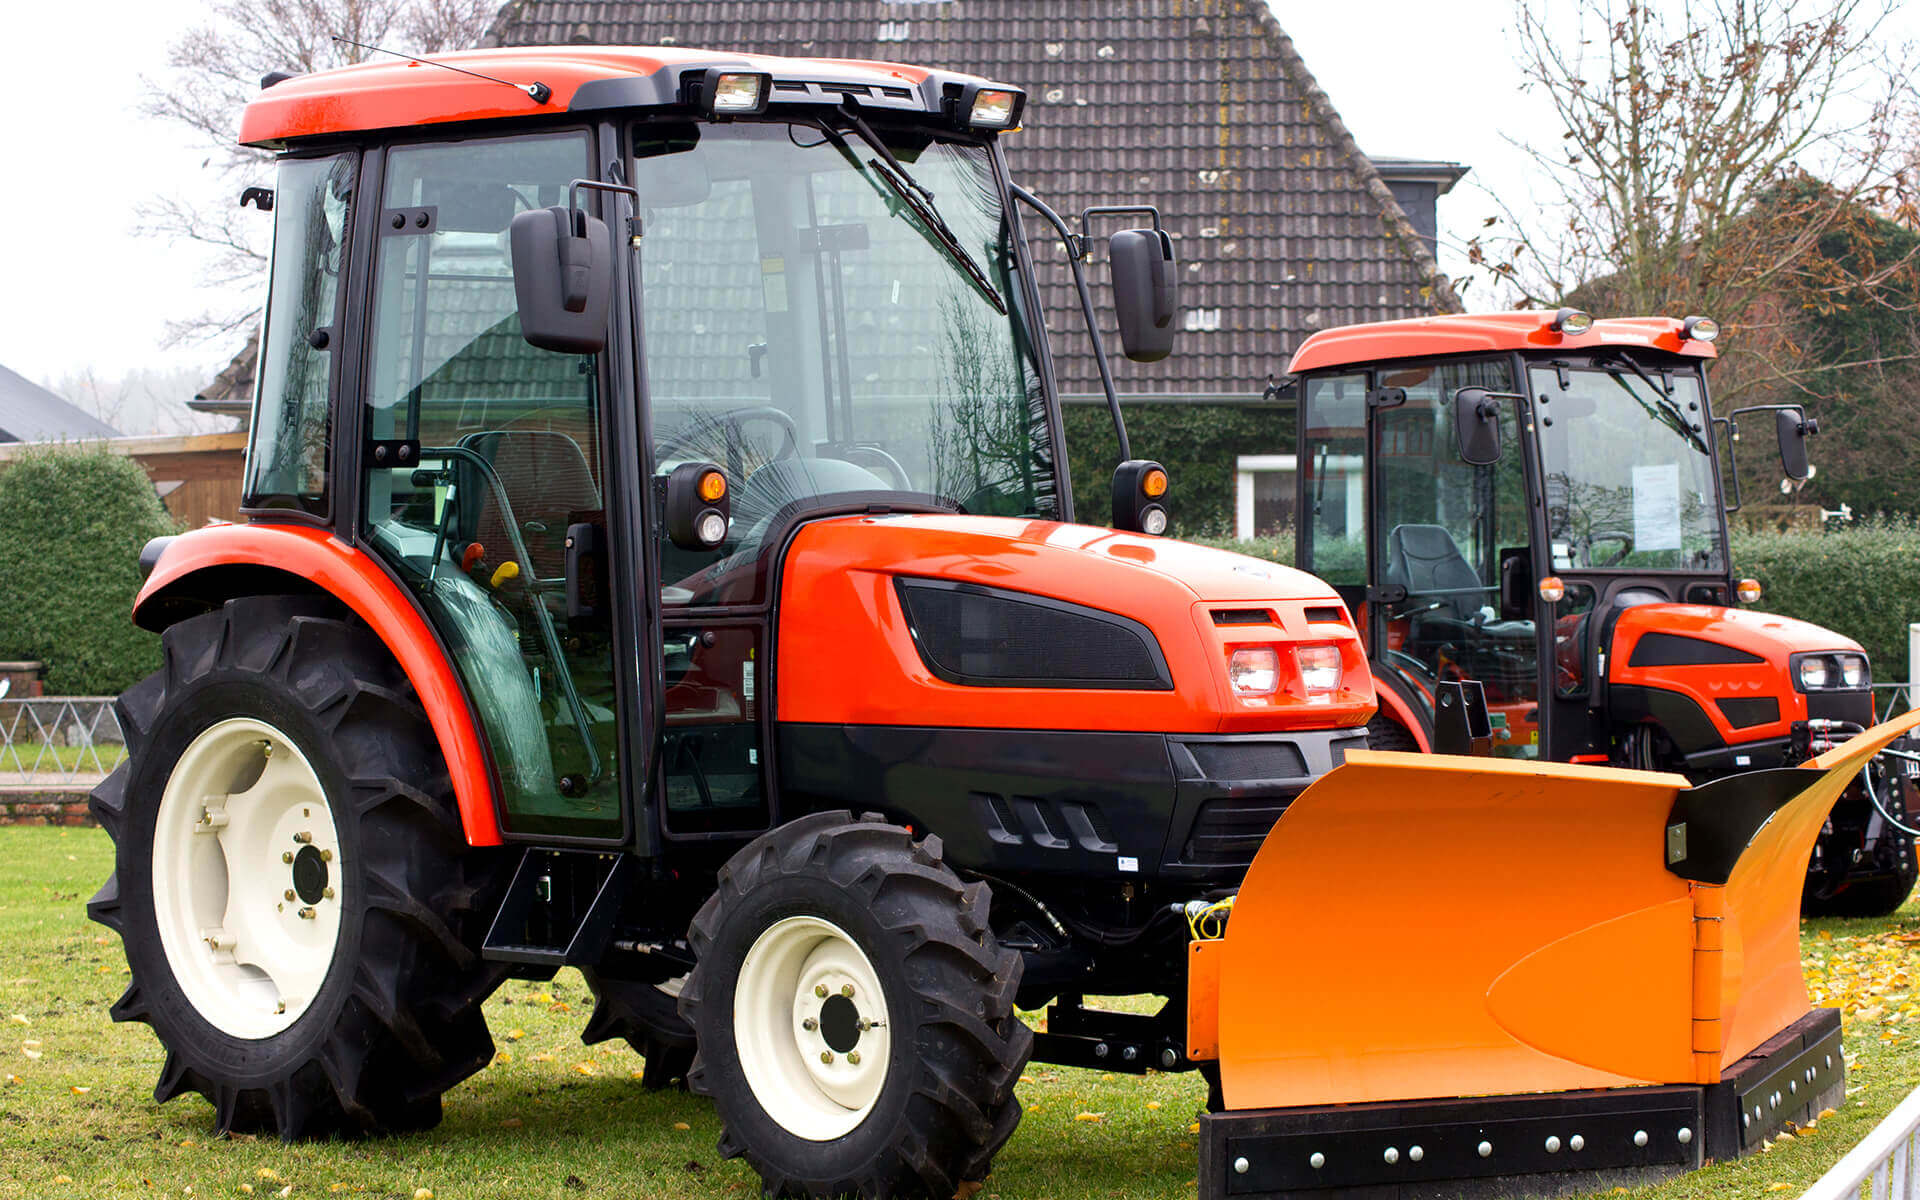 Choosing a Farm Utility Vehicle